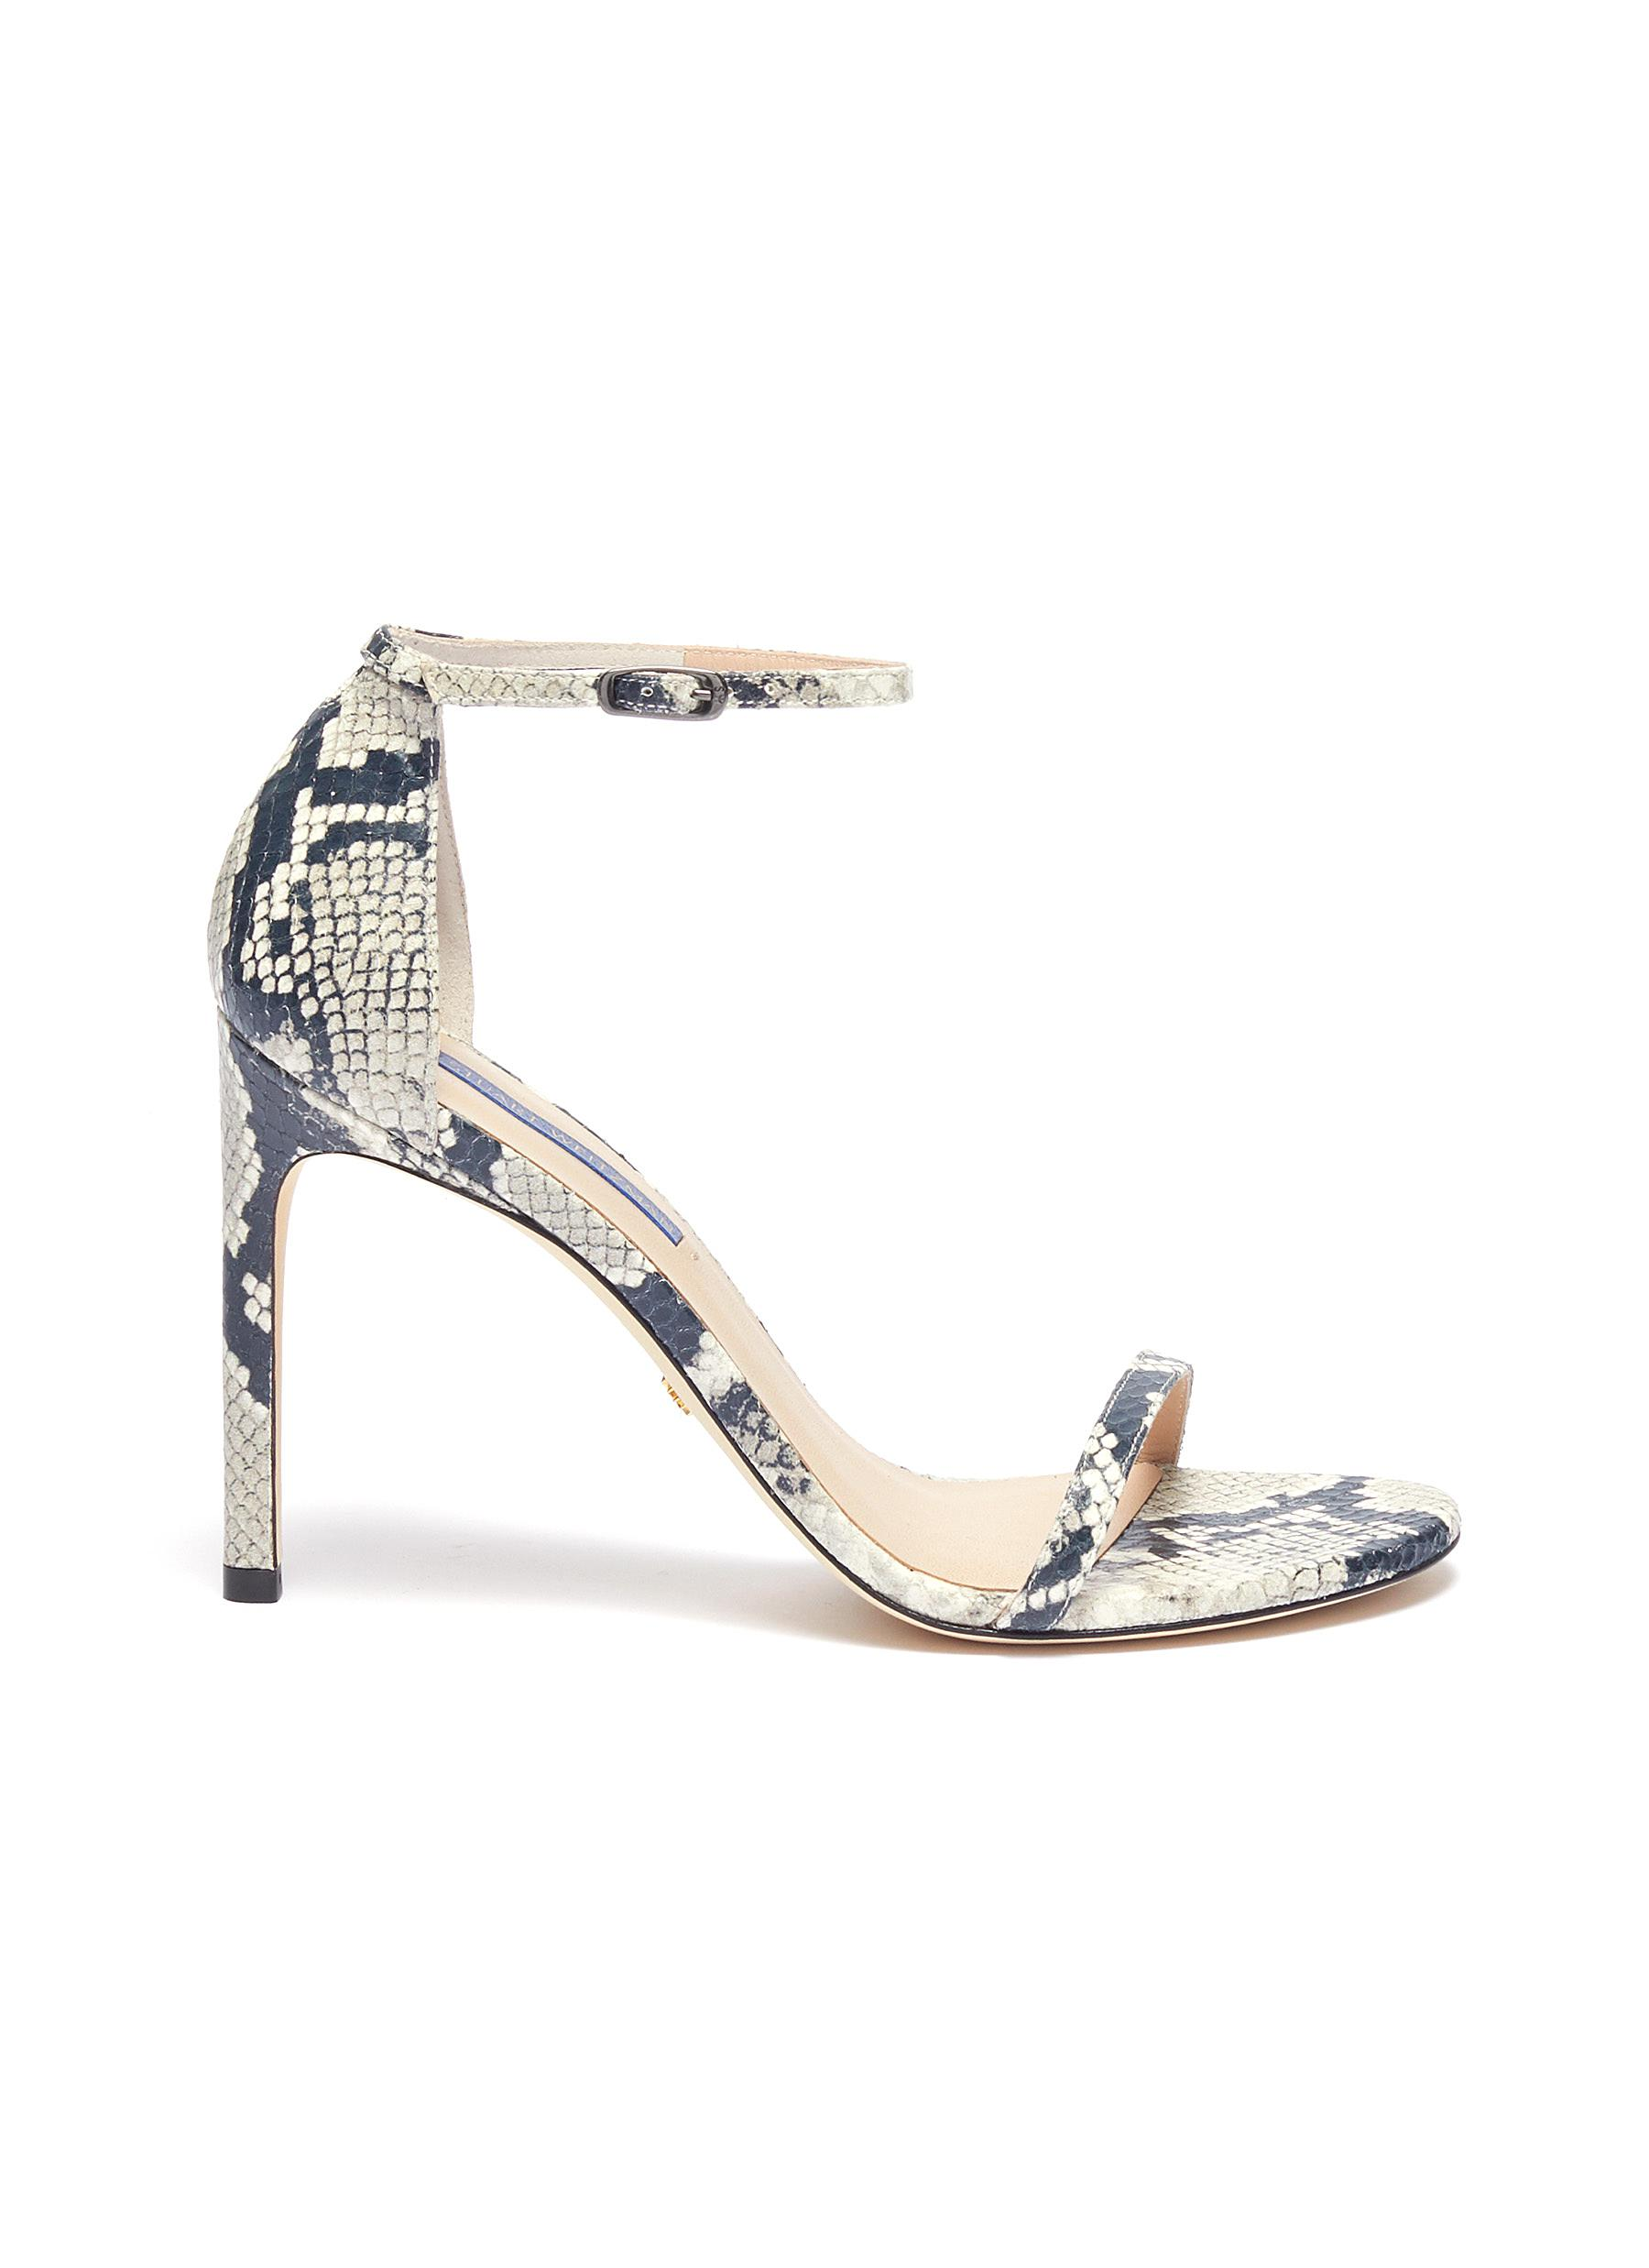 Nudistsong ankle strap snake embossed leather sandals by Stuart Weitzman